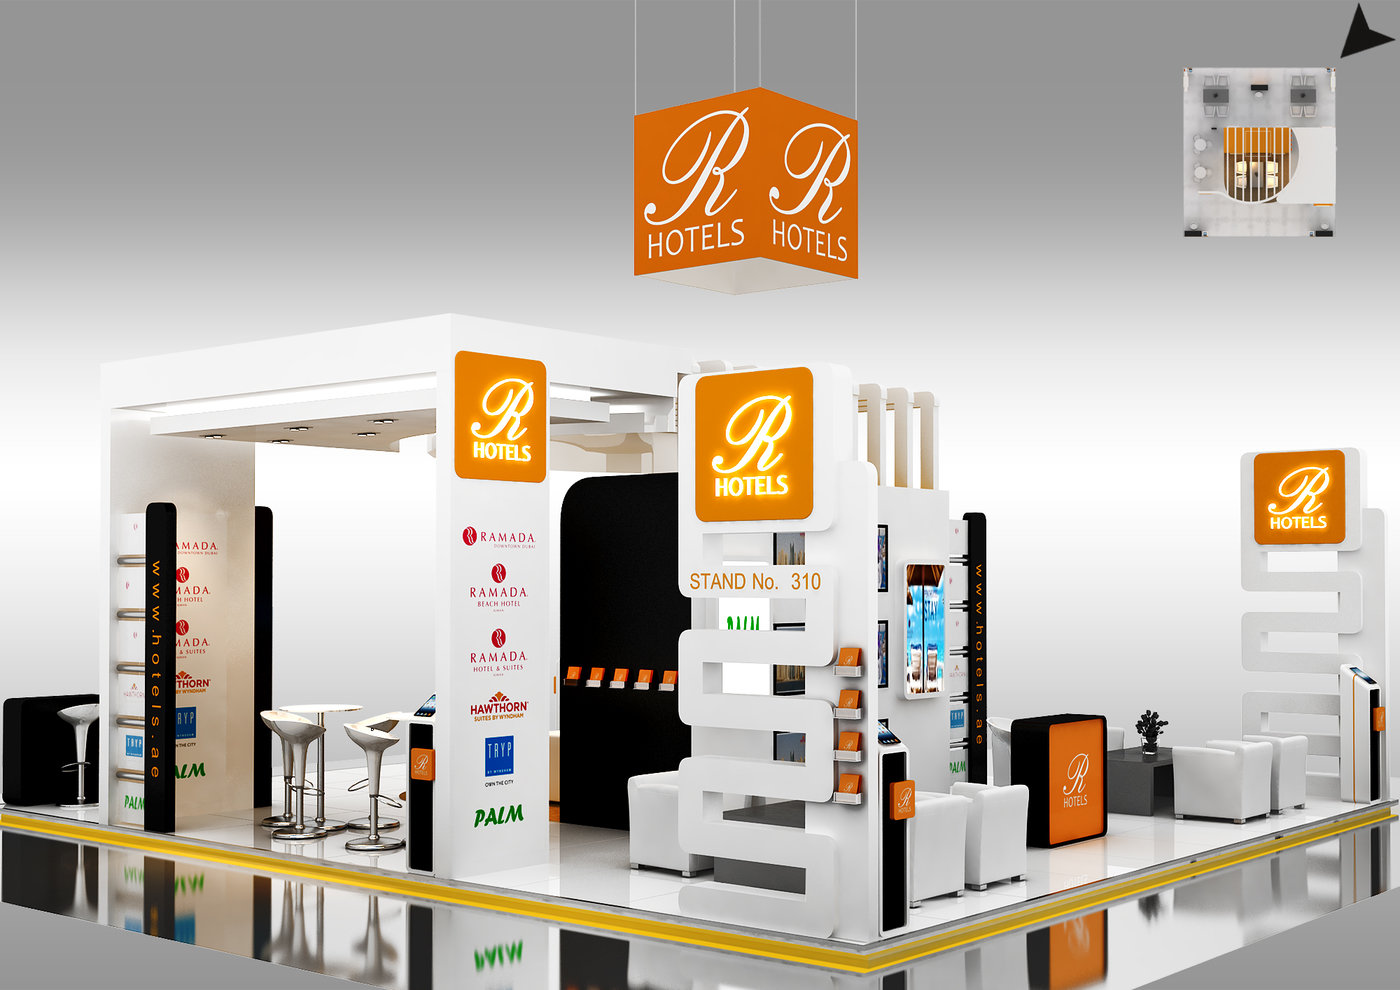 R Hotel stand WITS 2015 Event (adnec) by Rodel Ofiaza at